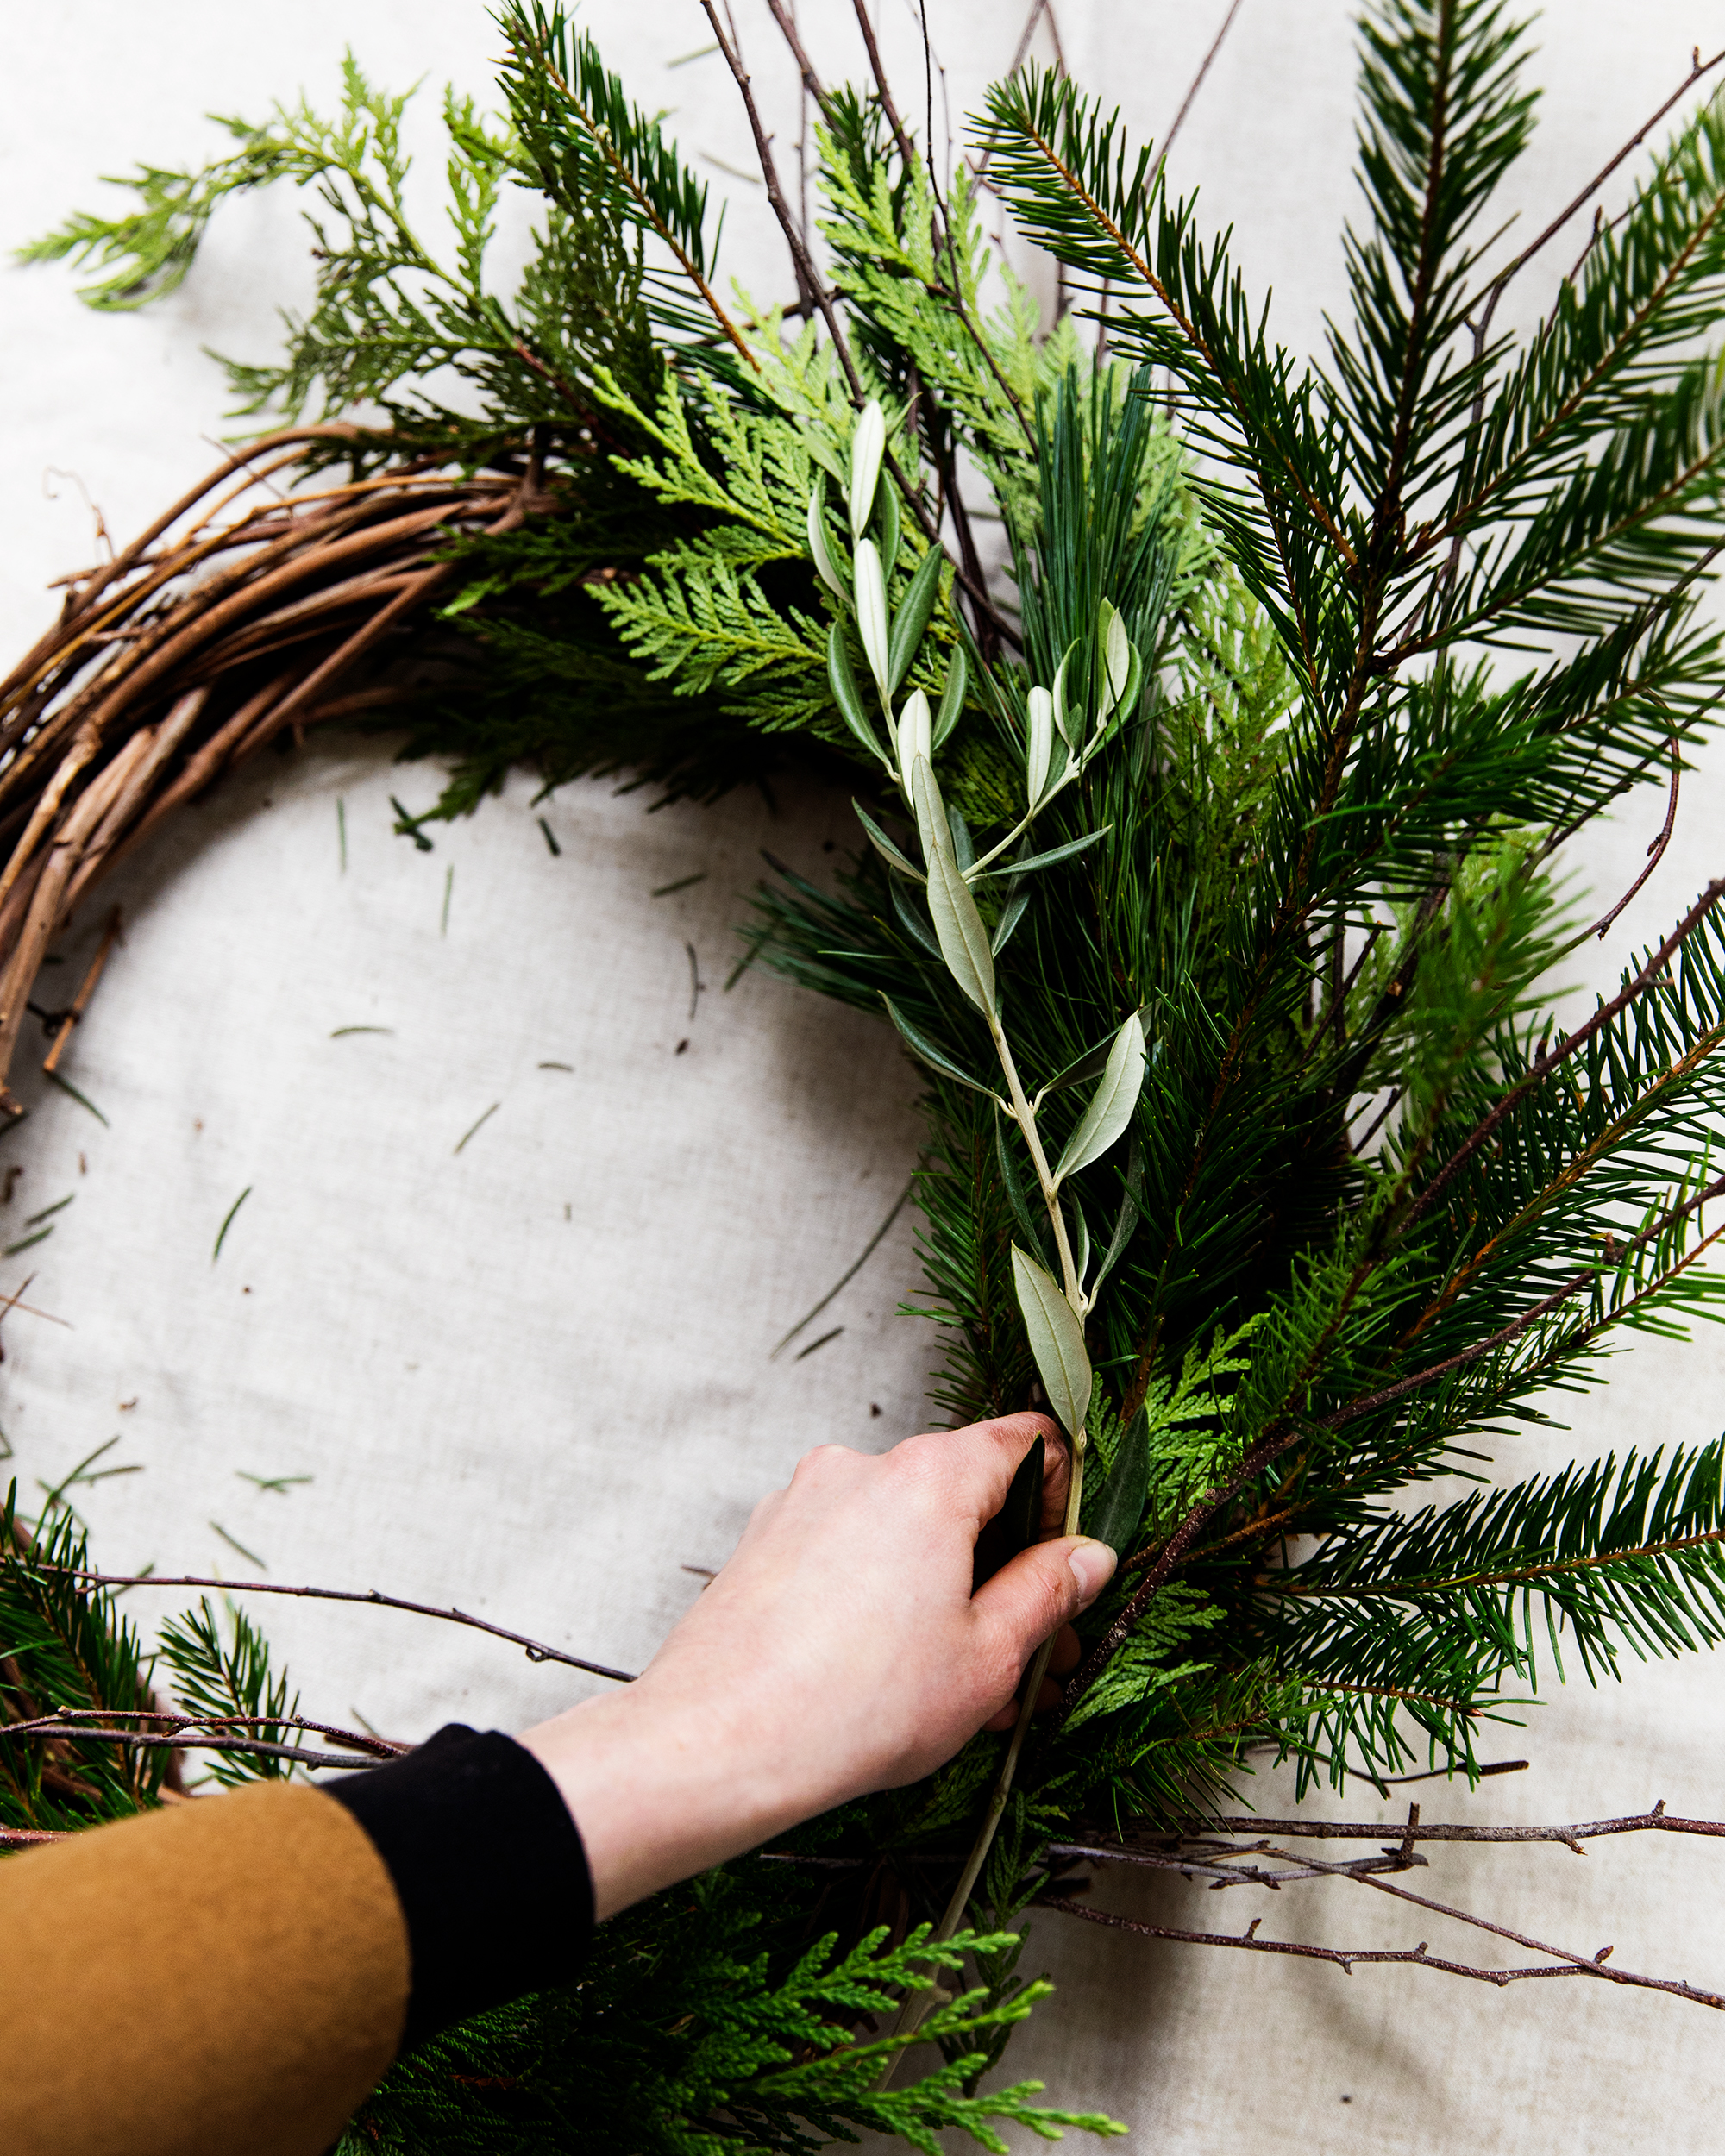 Step Four - Begin layering in the rosemary, and olive branch pieces, tucking them securely into place within the wreath as you go. To create a varied look within the shades of green, flip certain pieces of evergreen over to reveal a lighter or darker color.